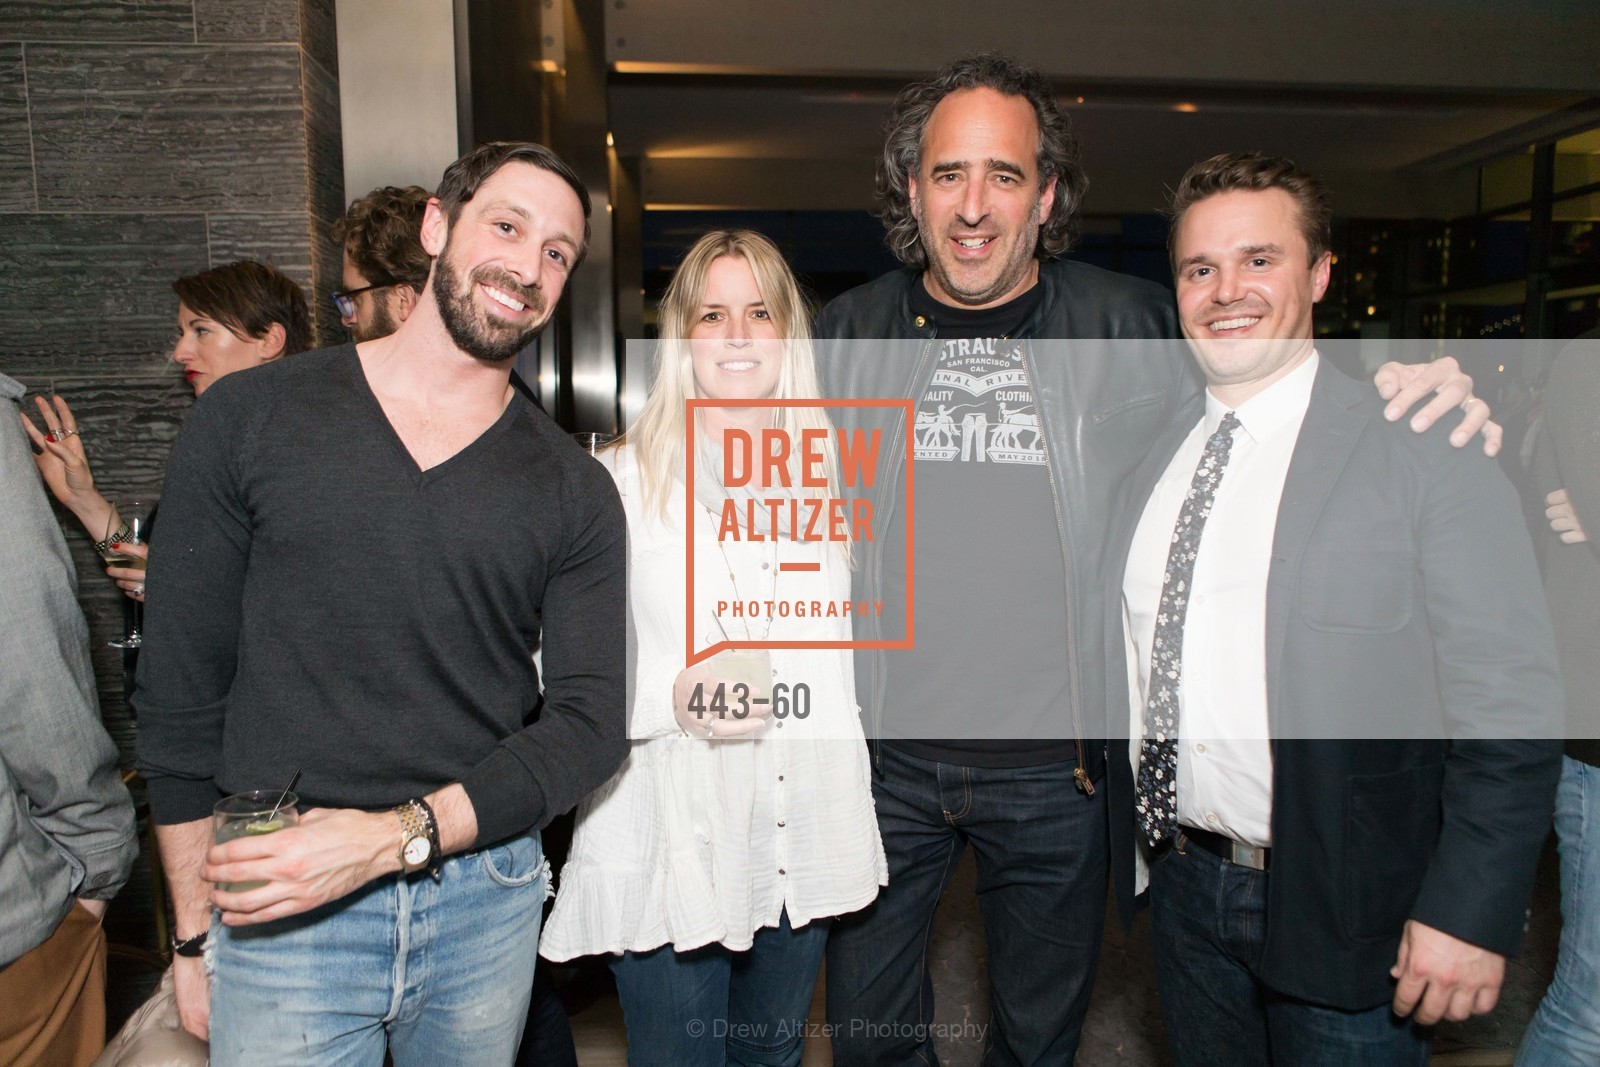 Jimmy Everett, Jackie Curly, JC Curly, Michael Krueger, MR PORTER Celebrate The San Francisco Issue of The Journal, The Battery Rooftop - The Battery SF, April 23rd, 2015,Drew Altizer, Drew Altizer Photography, full-service agency, private events, San Francisco photographer, photographer california